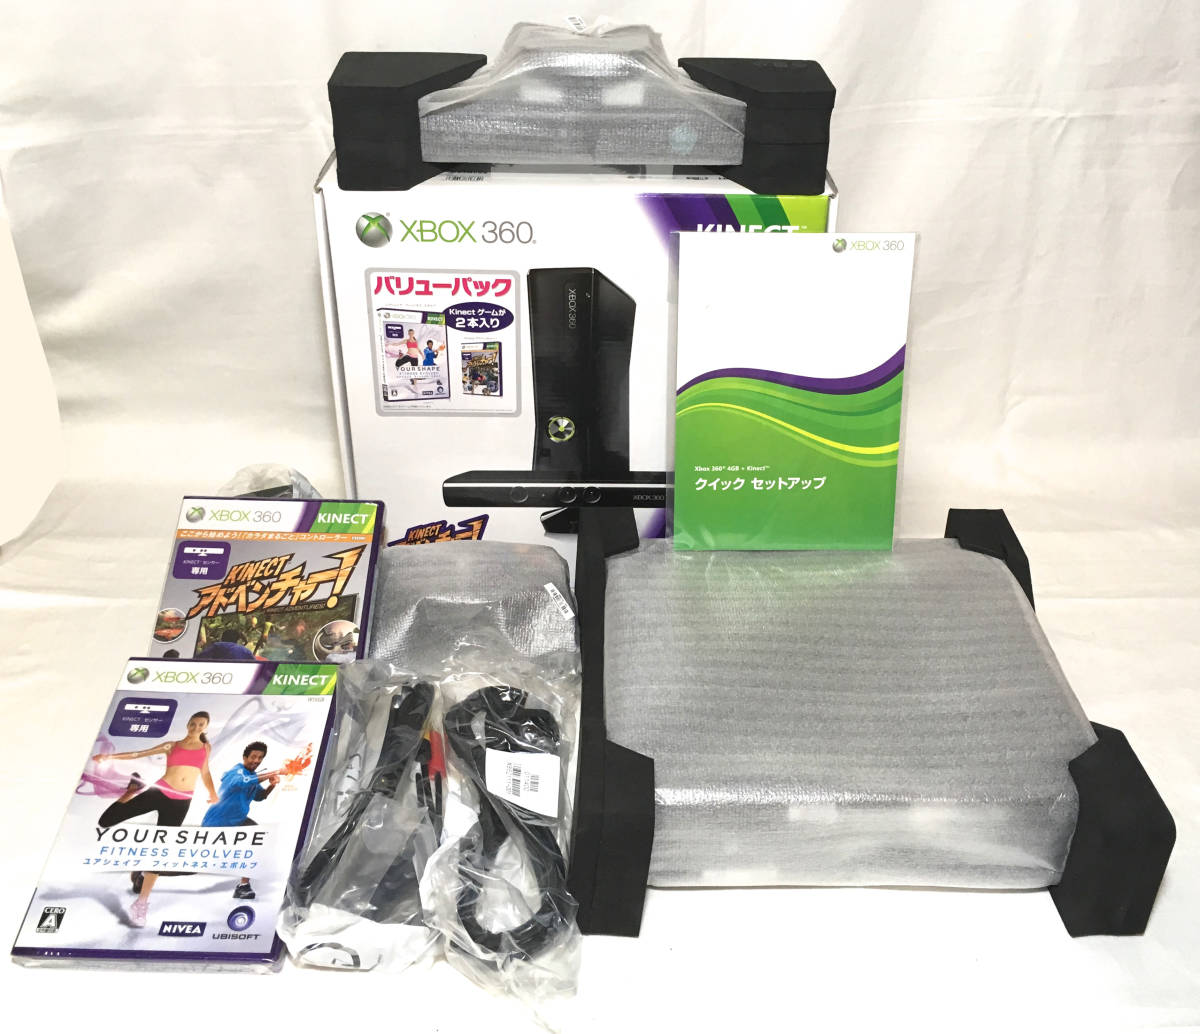 Xbox 360 4GB + Kinect value pack (Kinect game 2 ps including